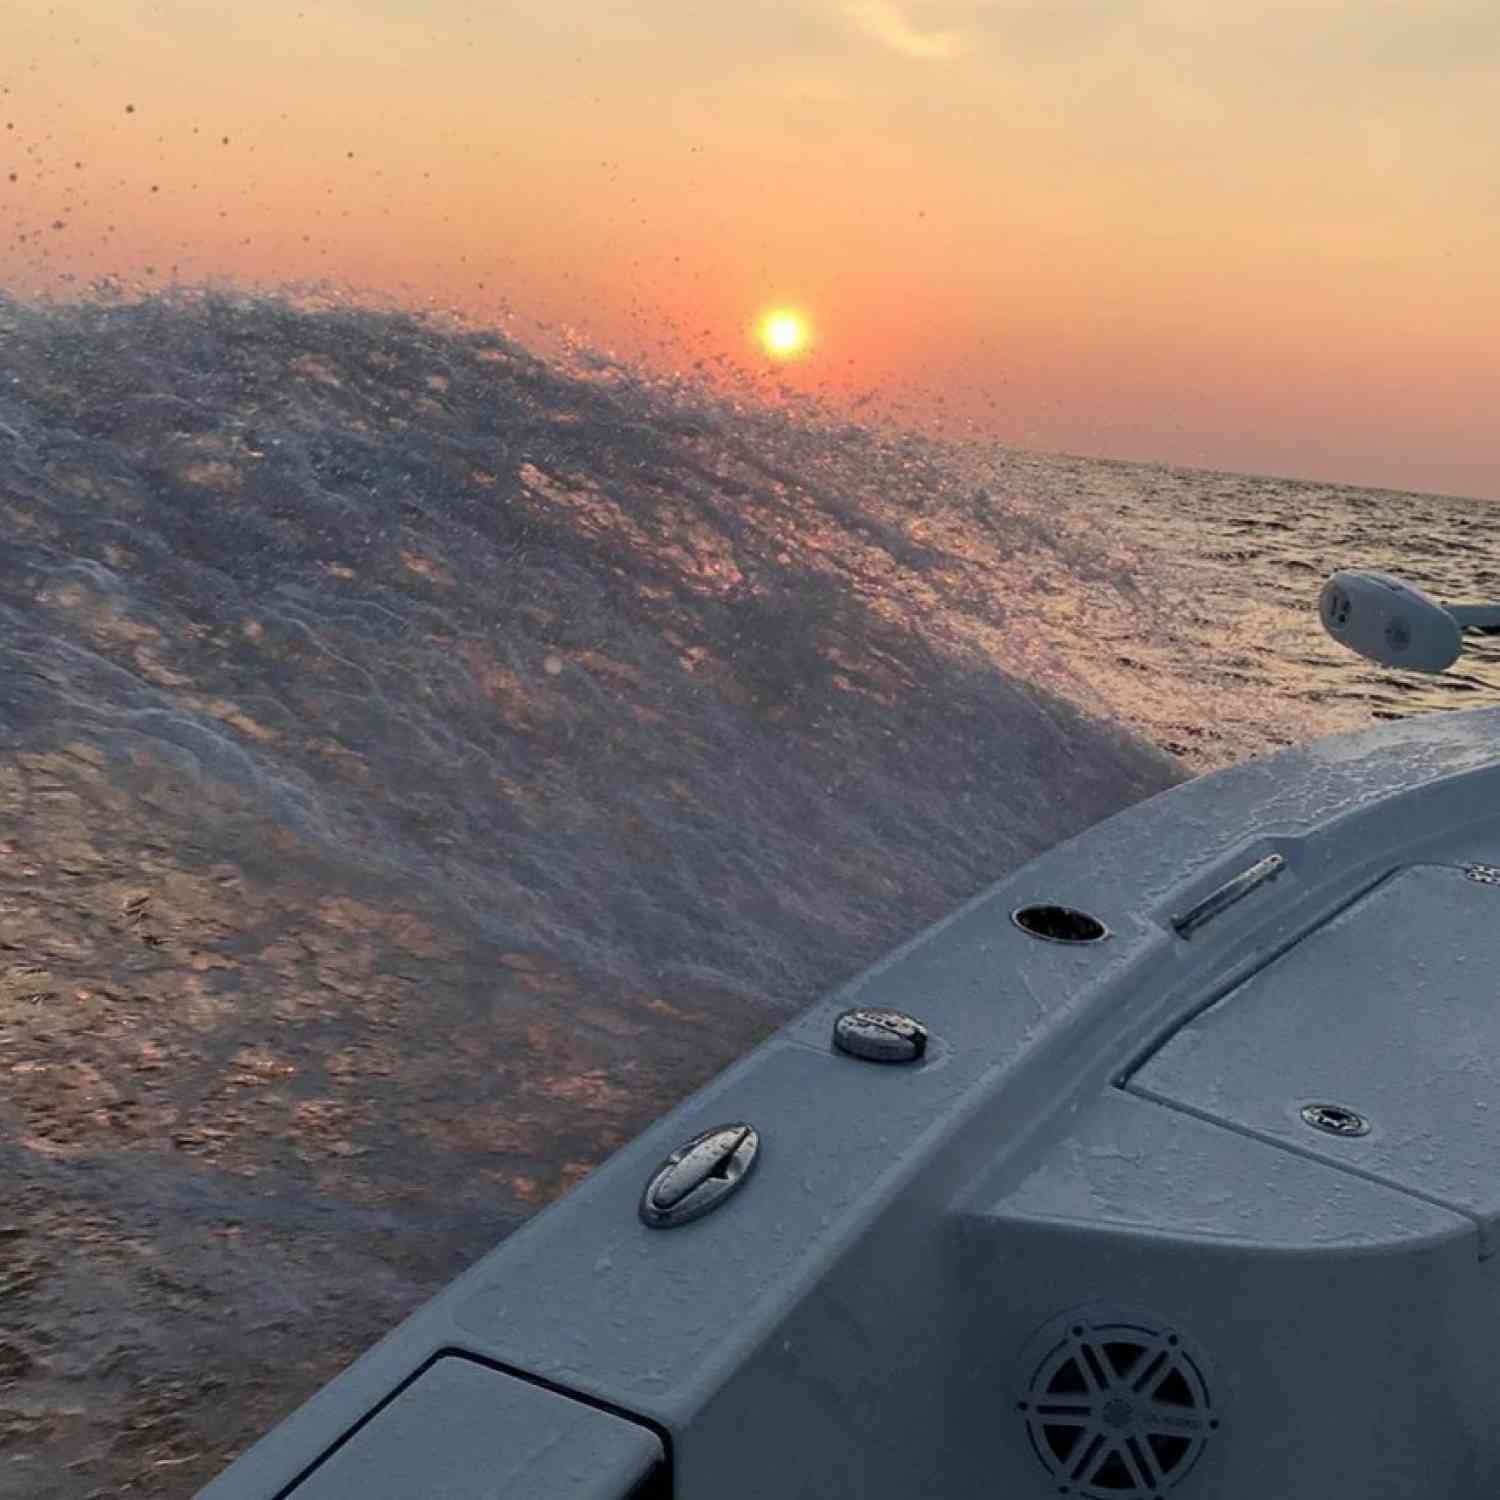 Title: Slicing through swells offshore - On board their Sportsman Masters 227 Bay Boat - Location: middle river md. Participating in the Photo Contest #SportsmanAugust2020